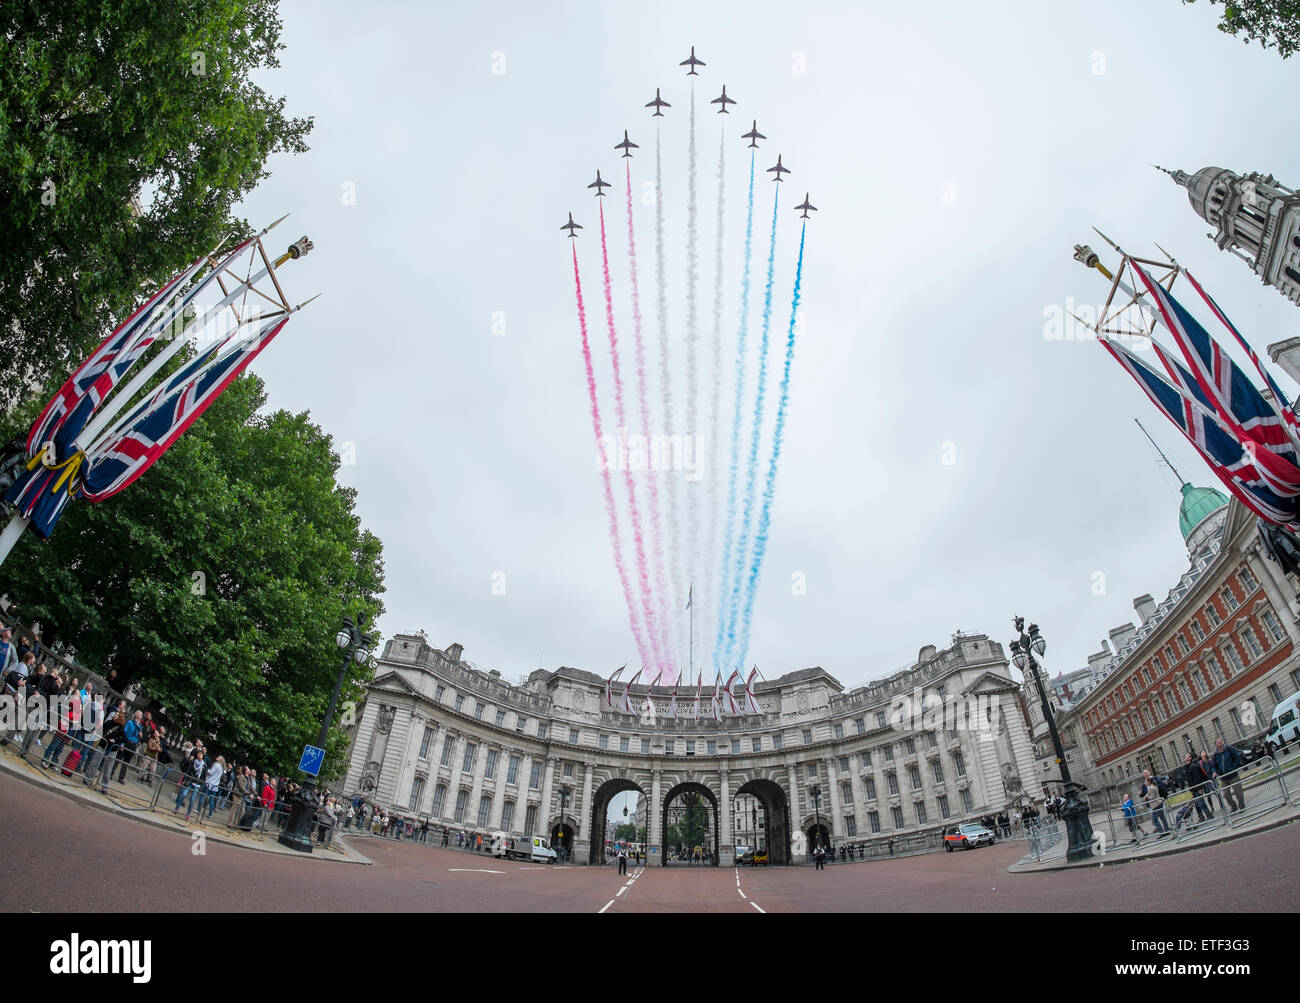 london-uk-13th-june-2015-flypast-by-the-